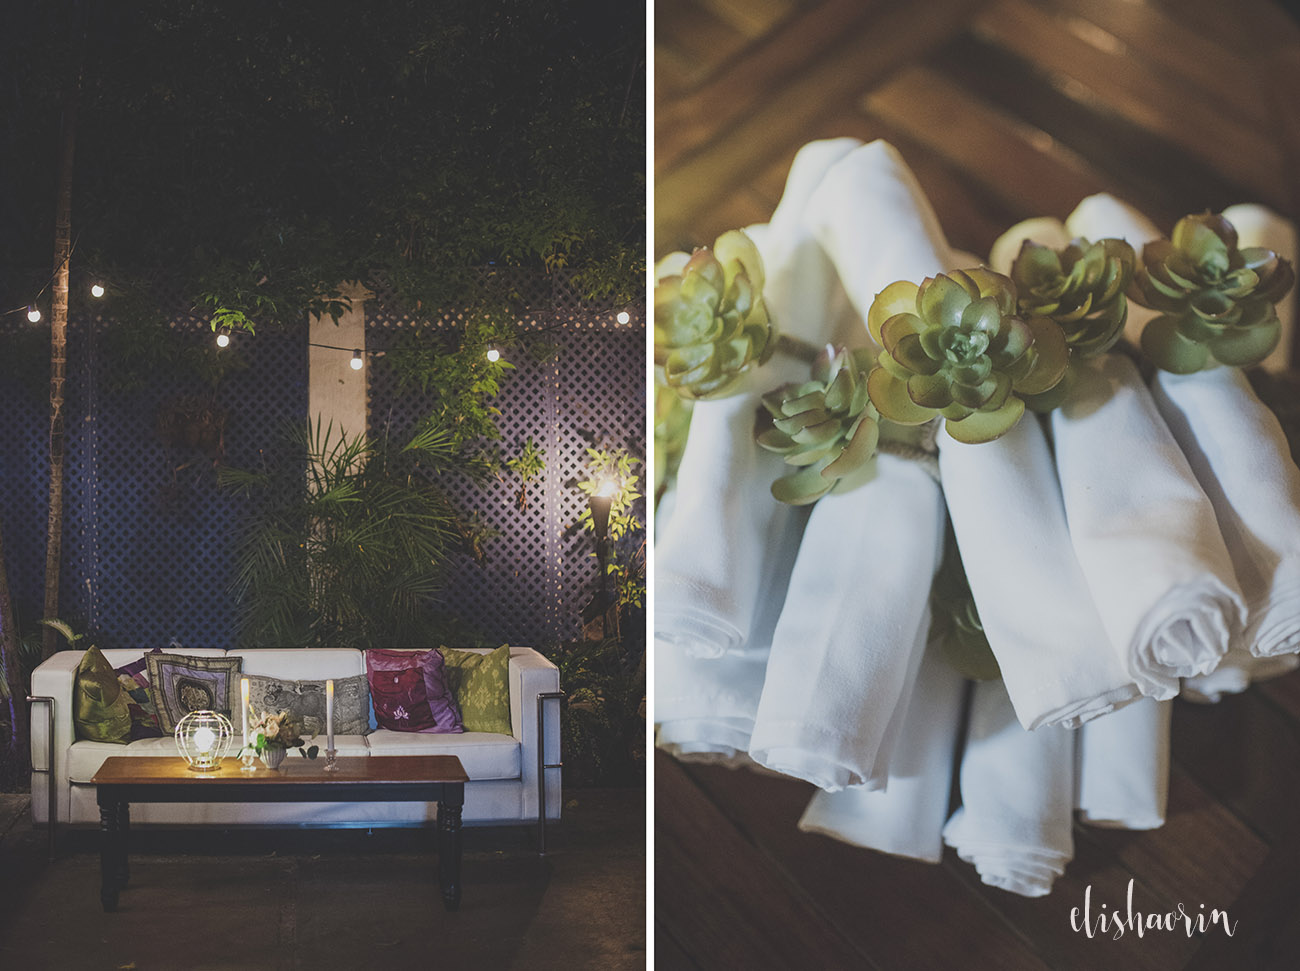 decoration-for-a-wedding-at-rumblines-st-john